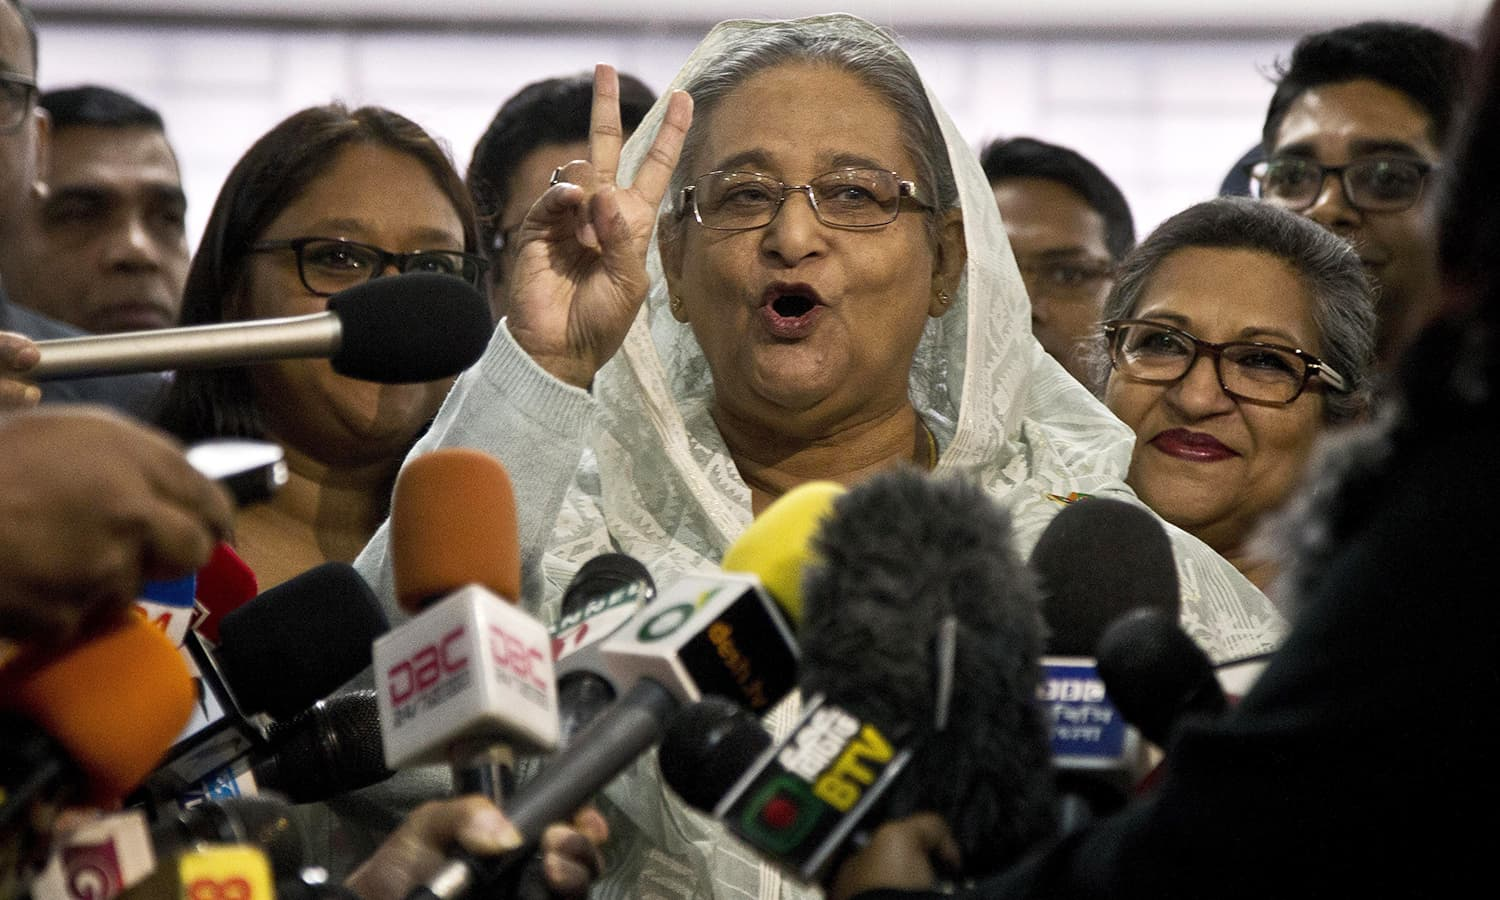 Bangladesh Prime Minister Sheikh Hasina flashes a victory sign as she speaks to the media persons after casting her vote in Dhaka. ─ AP